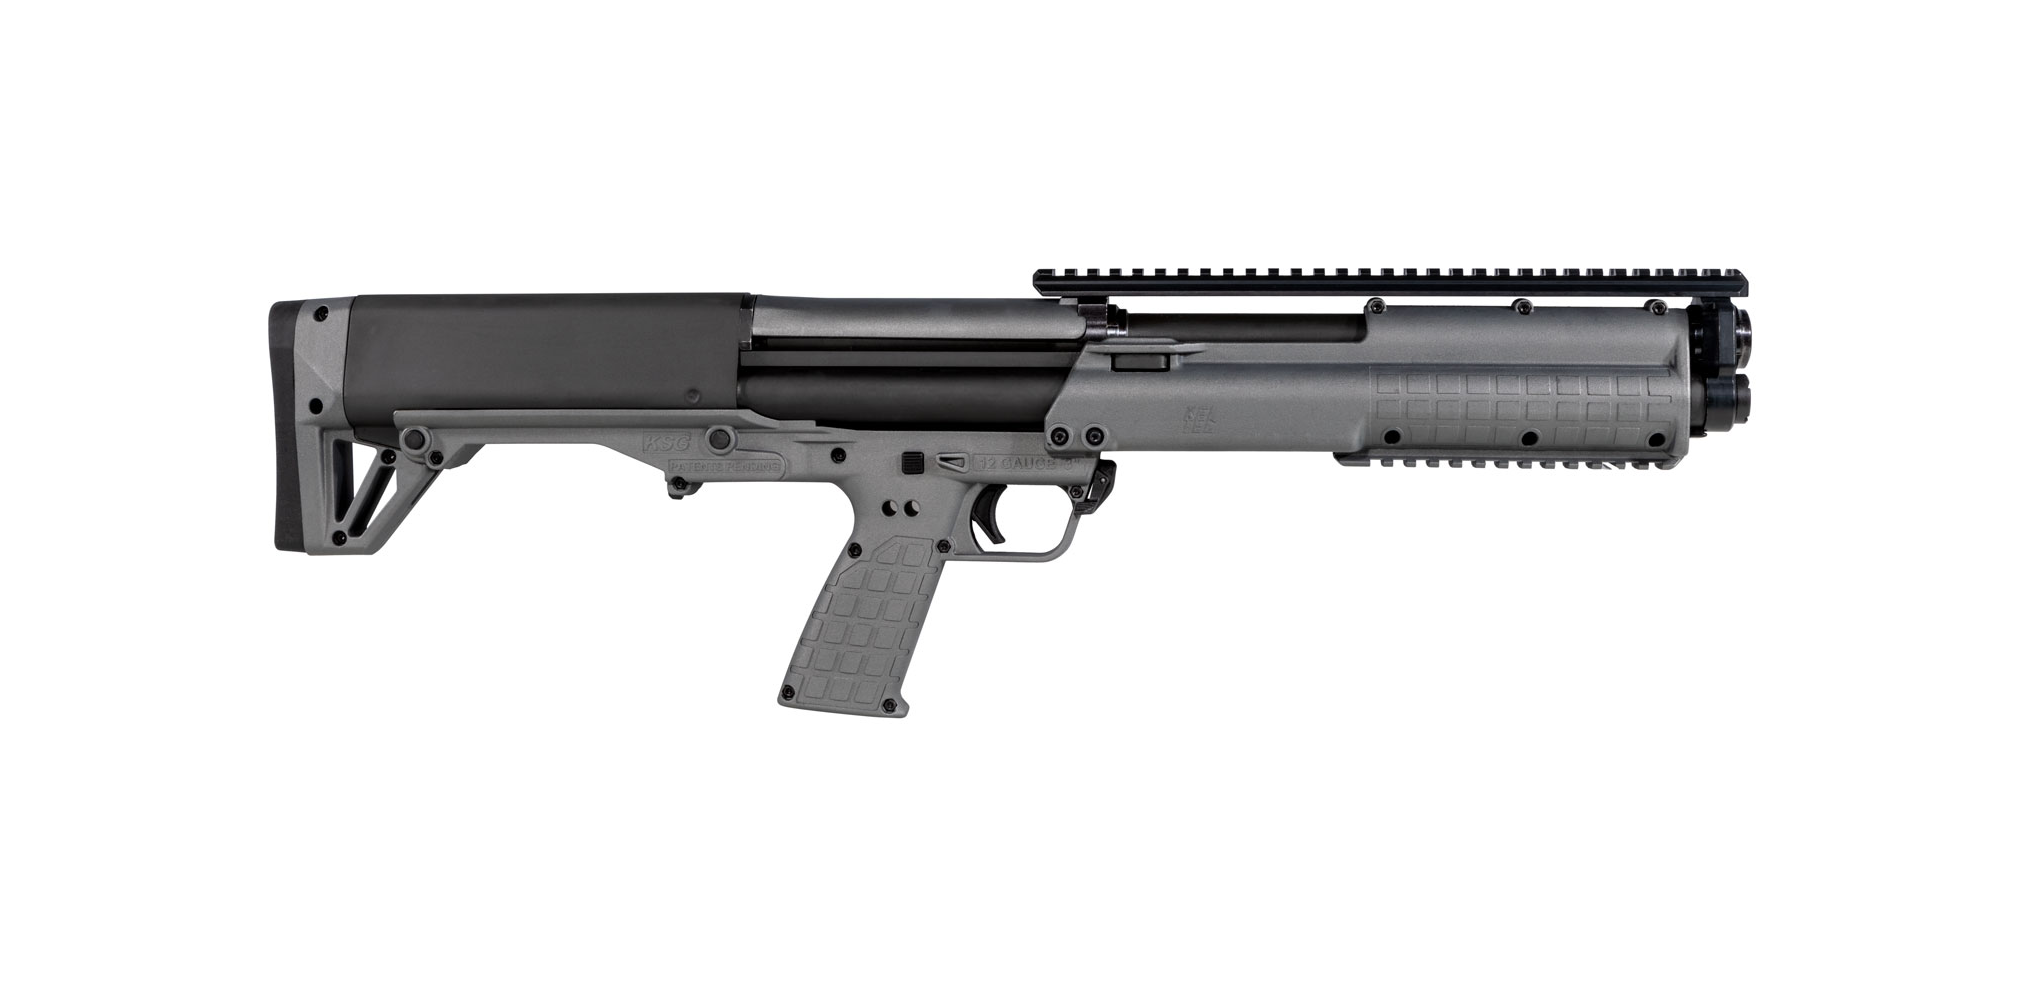 Kel-Tec KSG Tactical Gray Pump Action 12GA